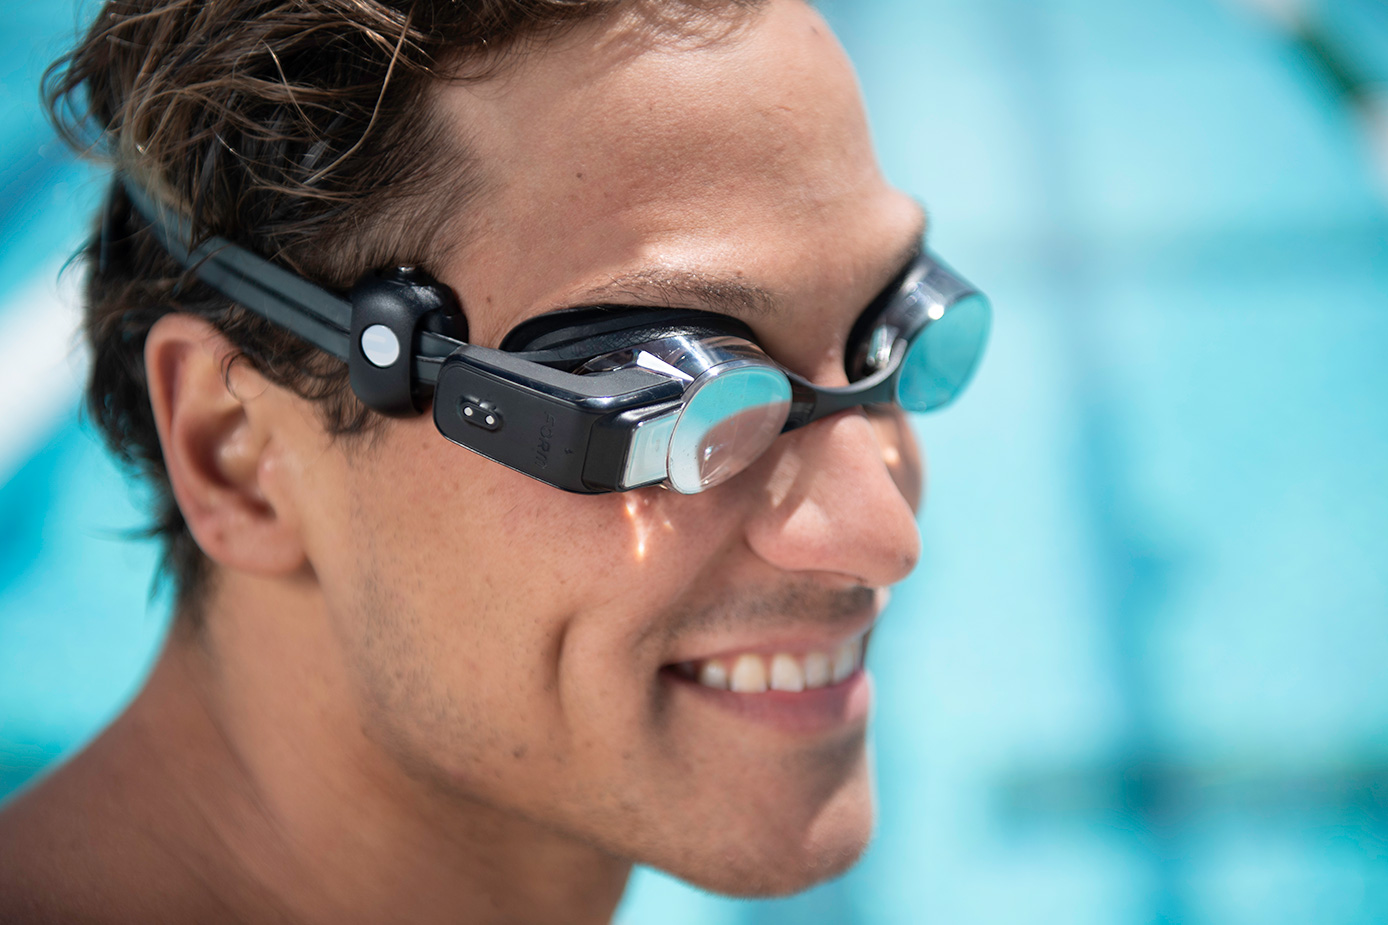 FORM Smart Goggles Announce Heart Rate Monitor Feature at